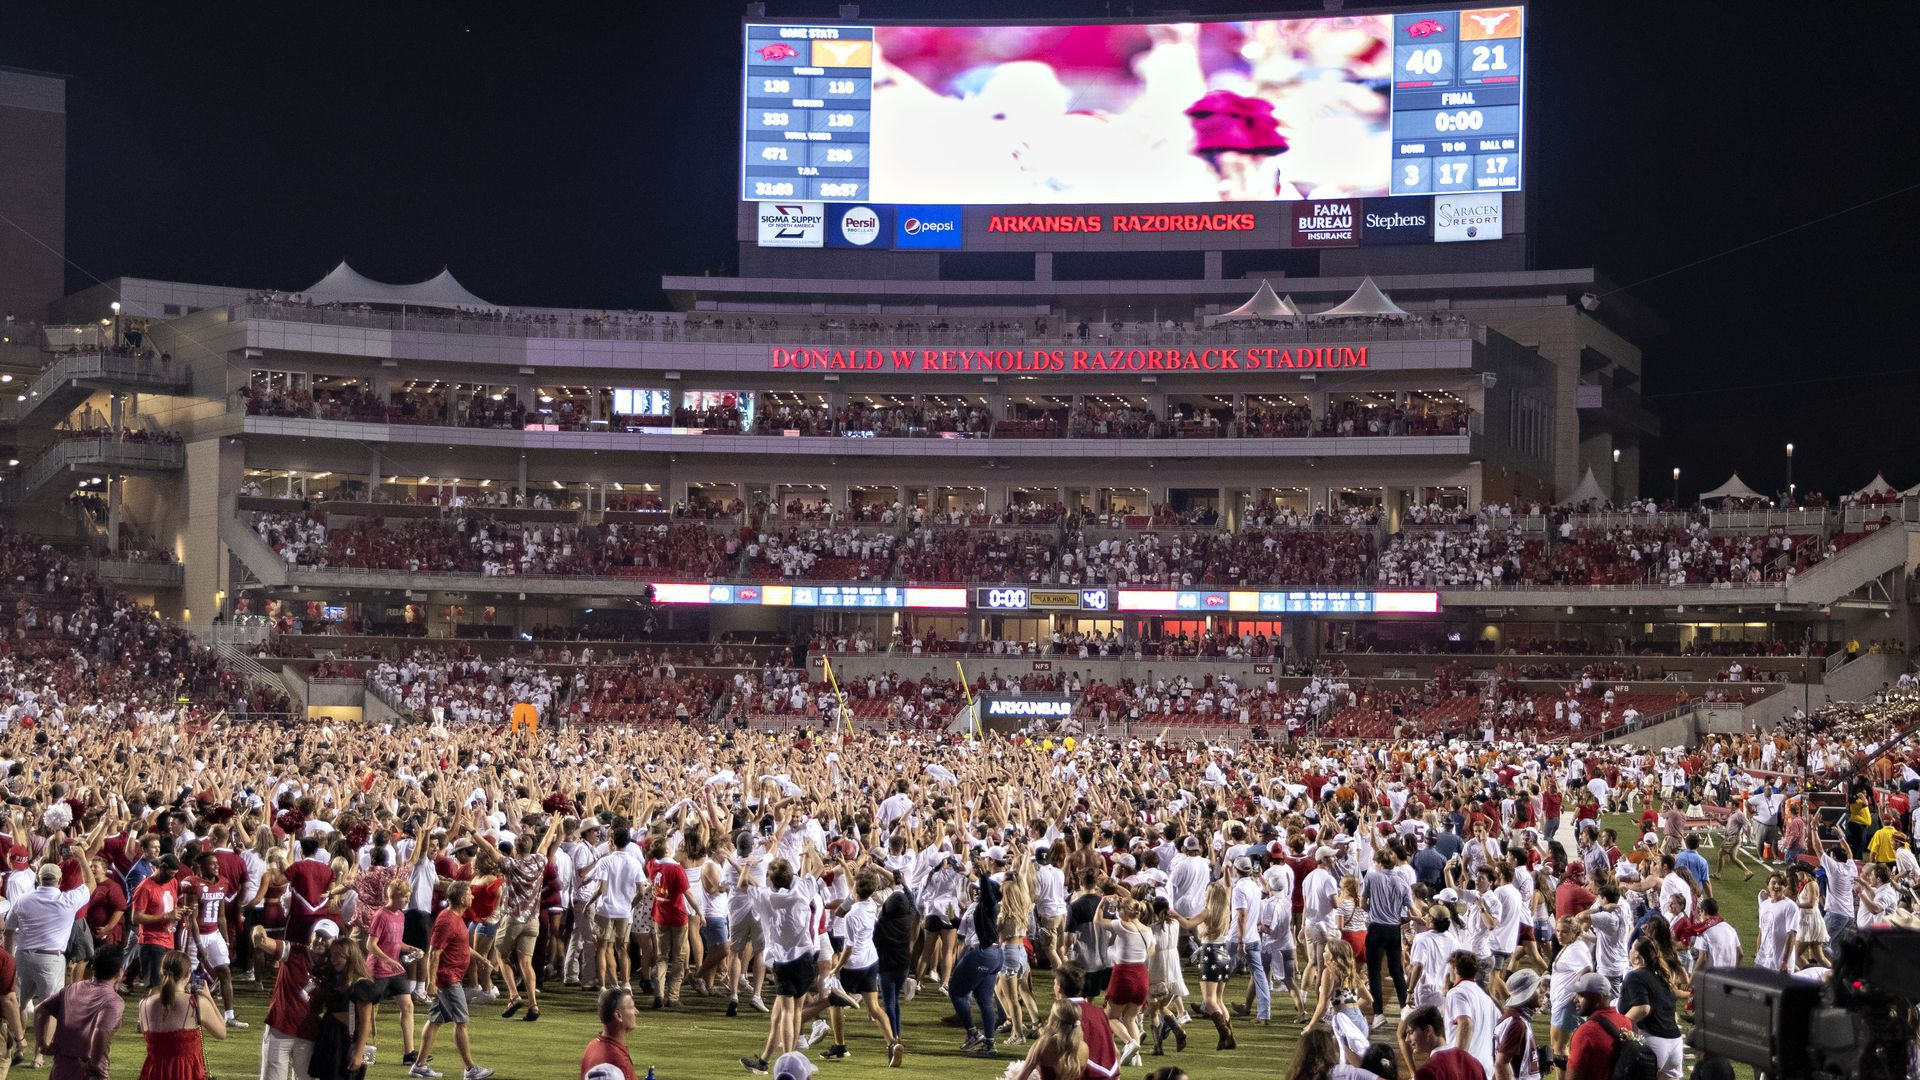 A crowd of people on the football field after the Razorbacks-Longhorns game.